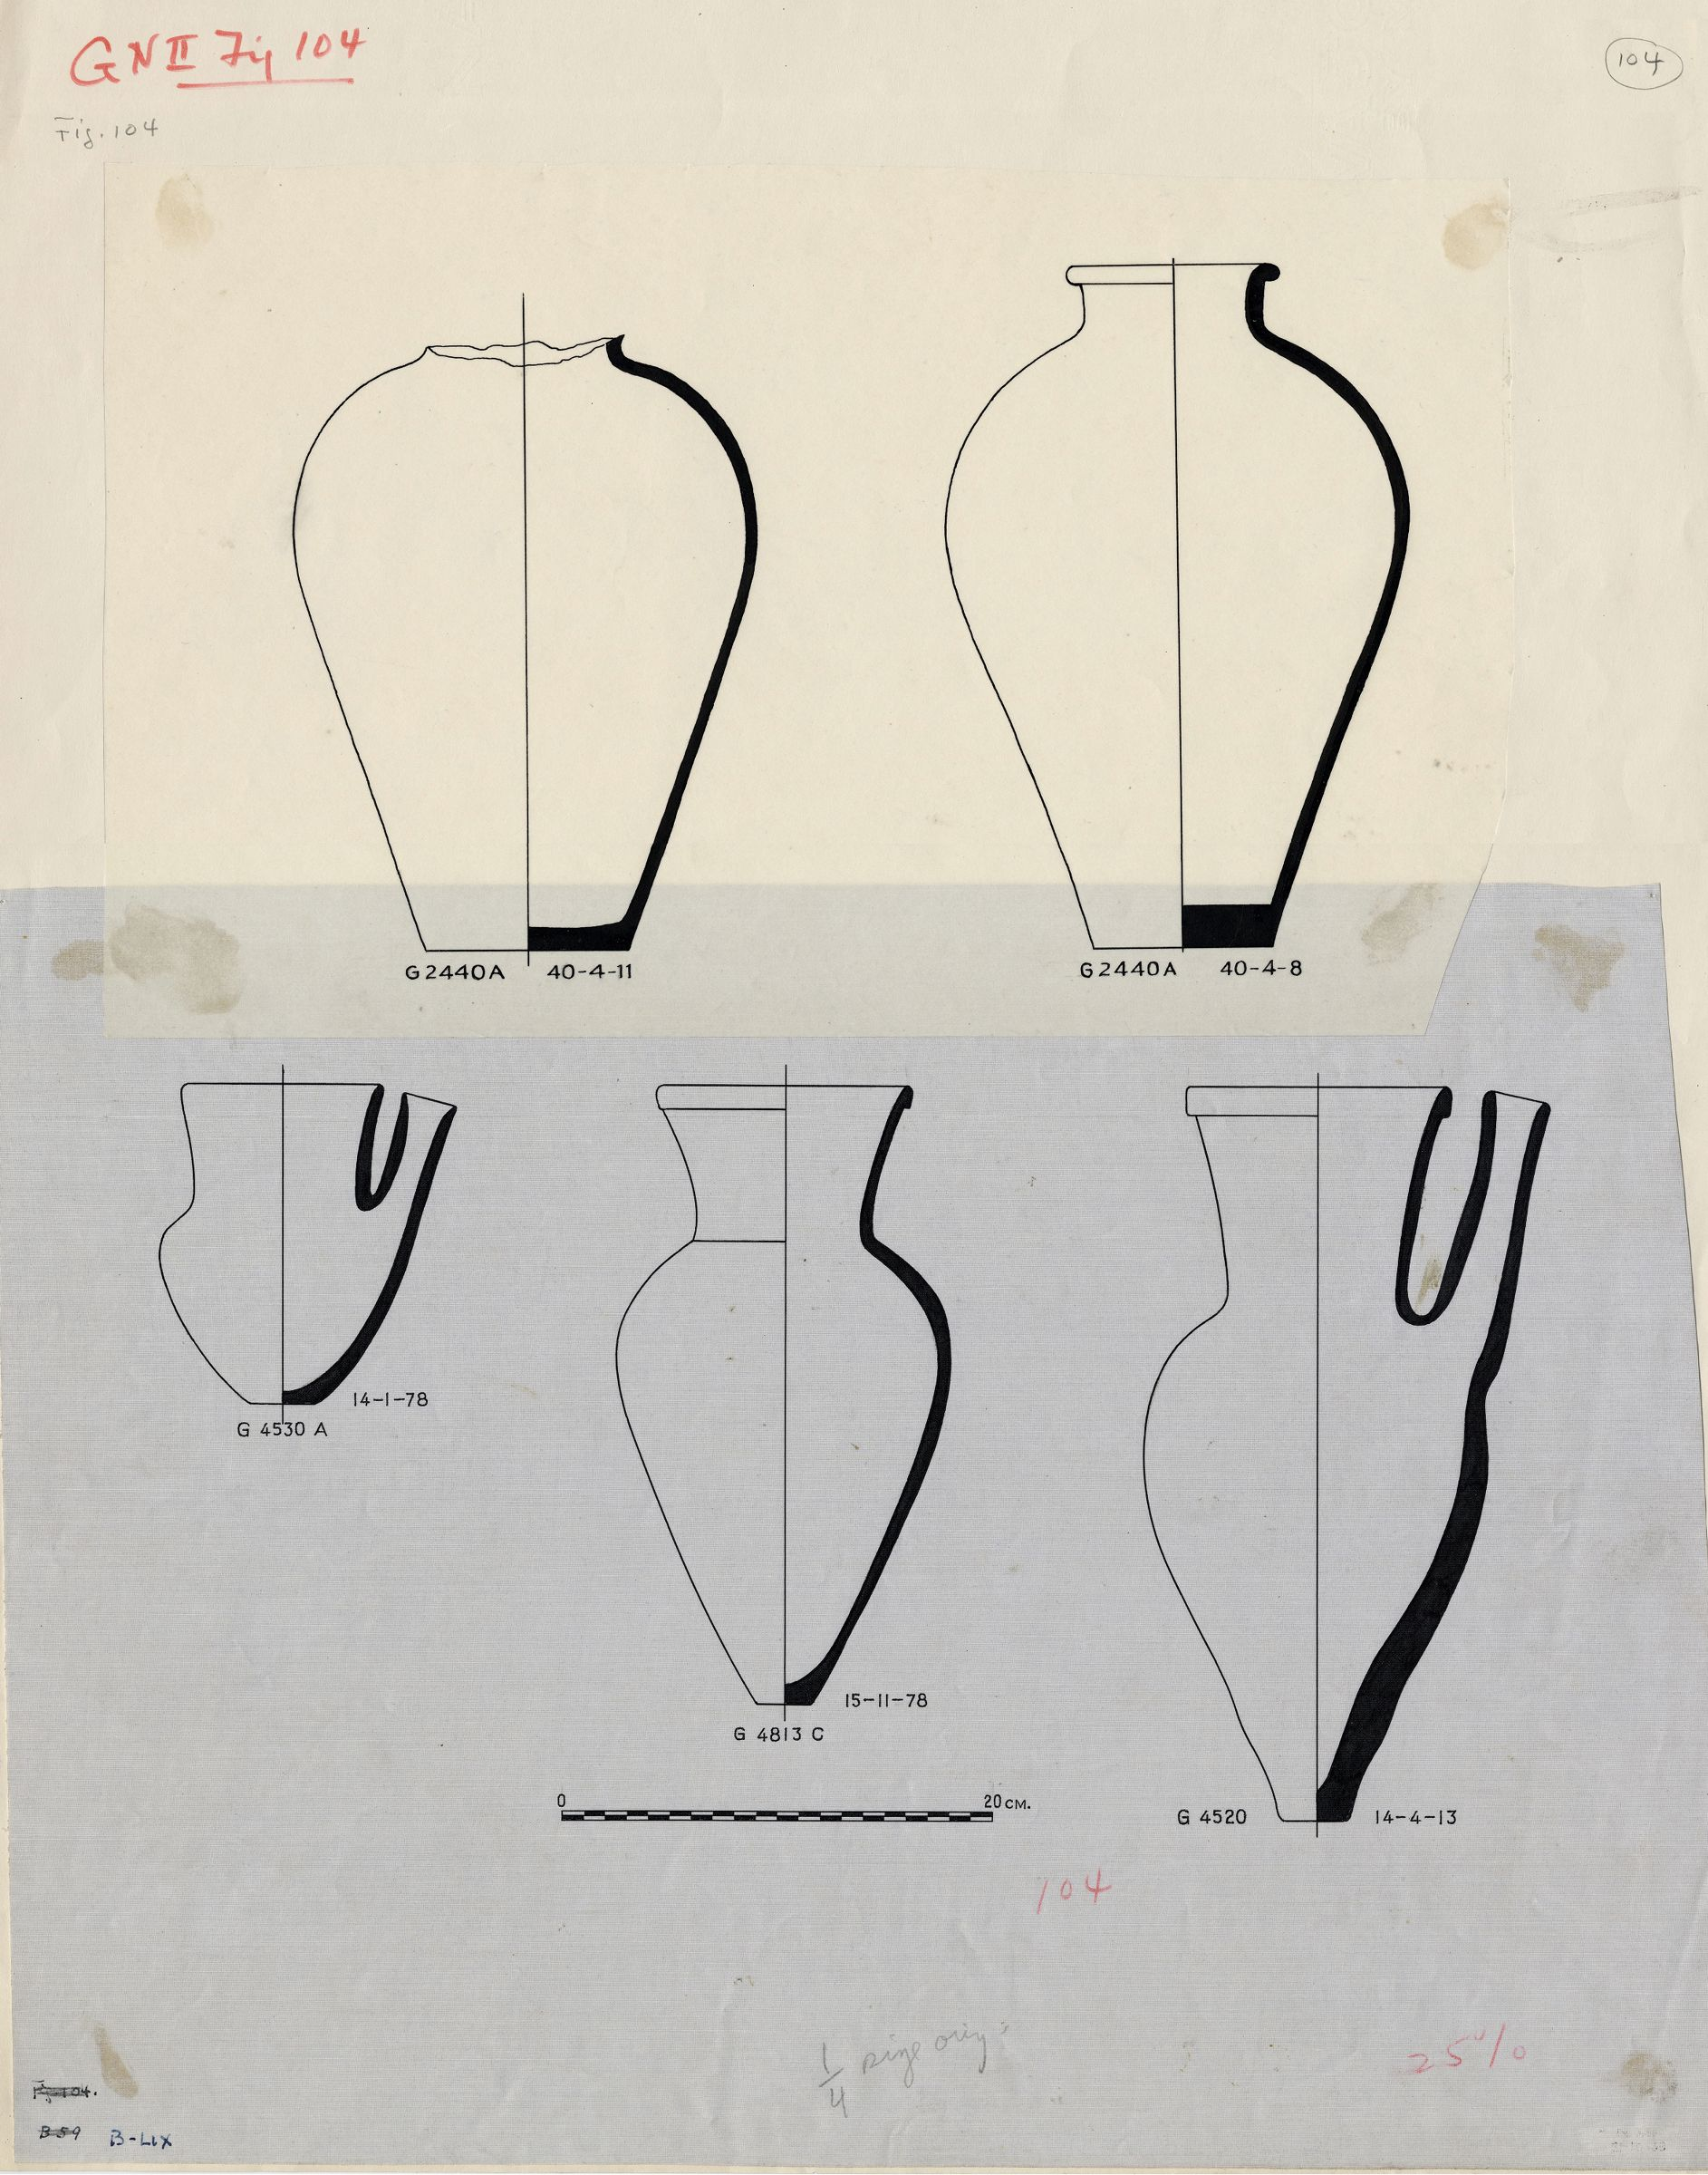 Drawings: Pottery, jars from G 2440, Shaft A; G 4520; G 4530, Shaft A; G 4813, Shaft C